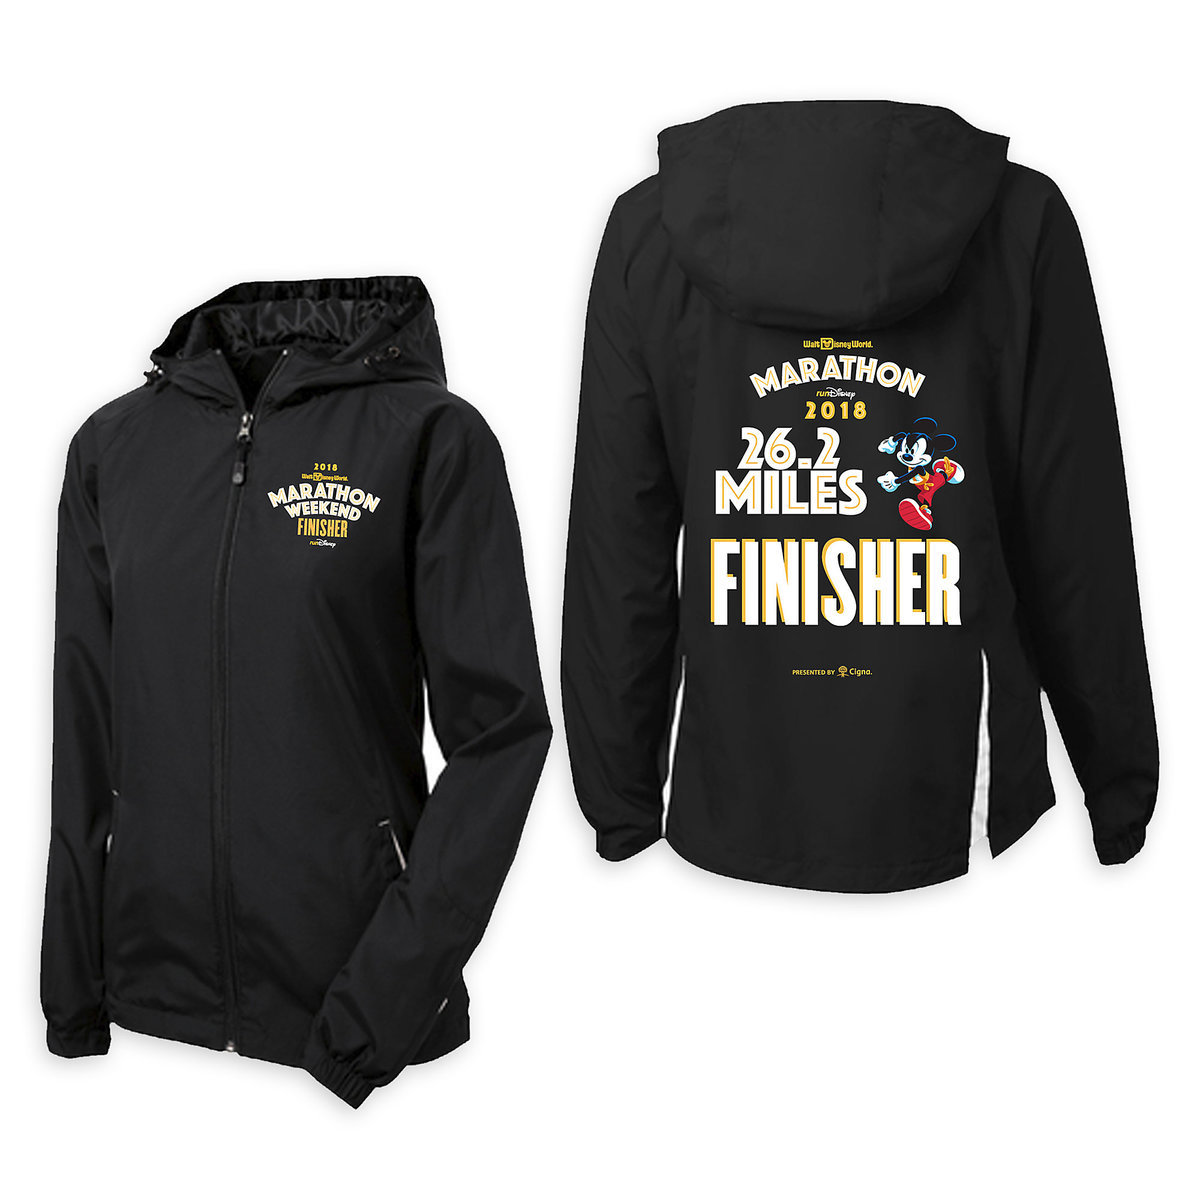 rundisney finisher jackets out now